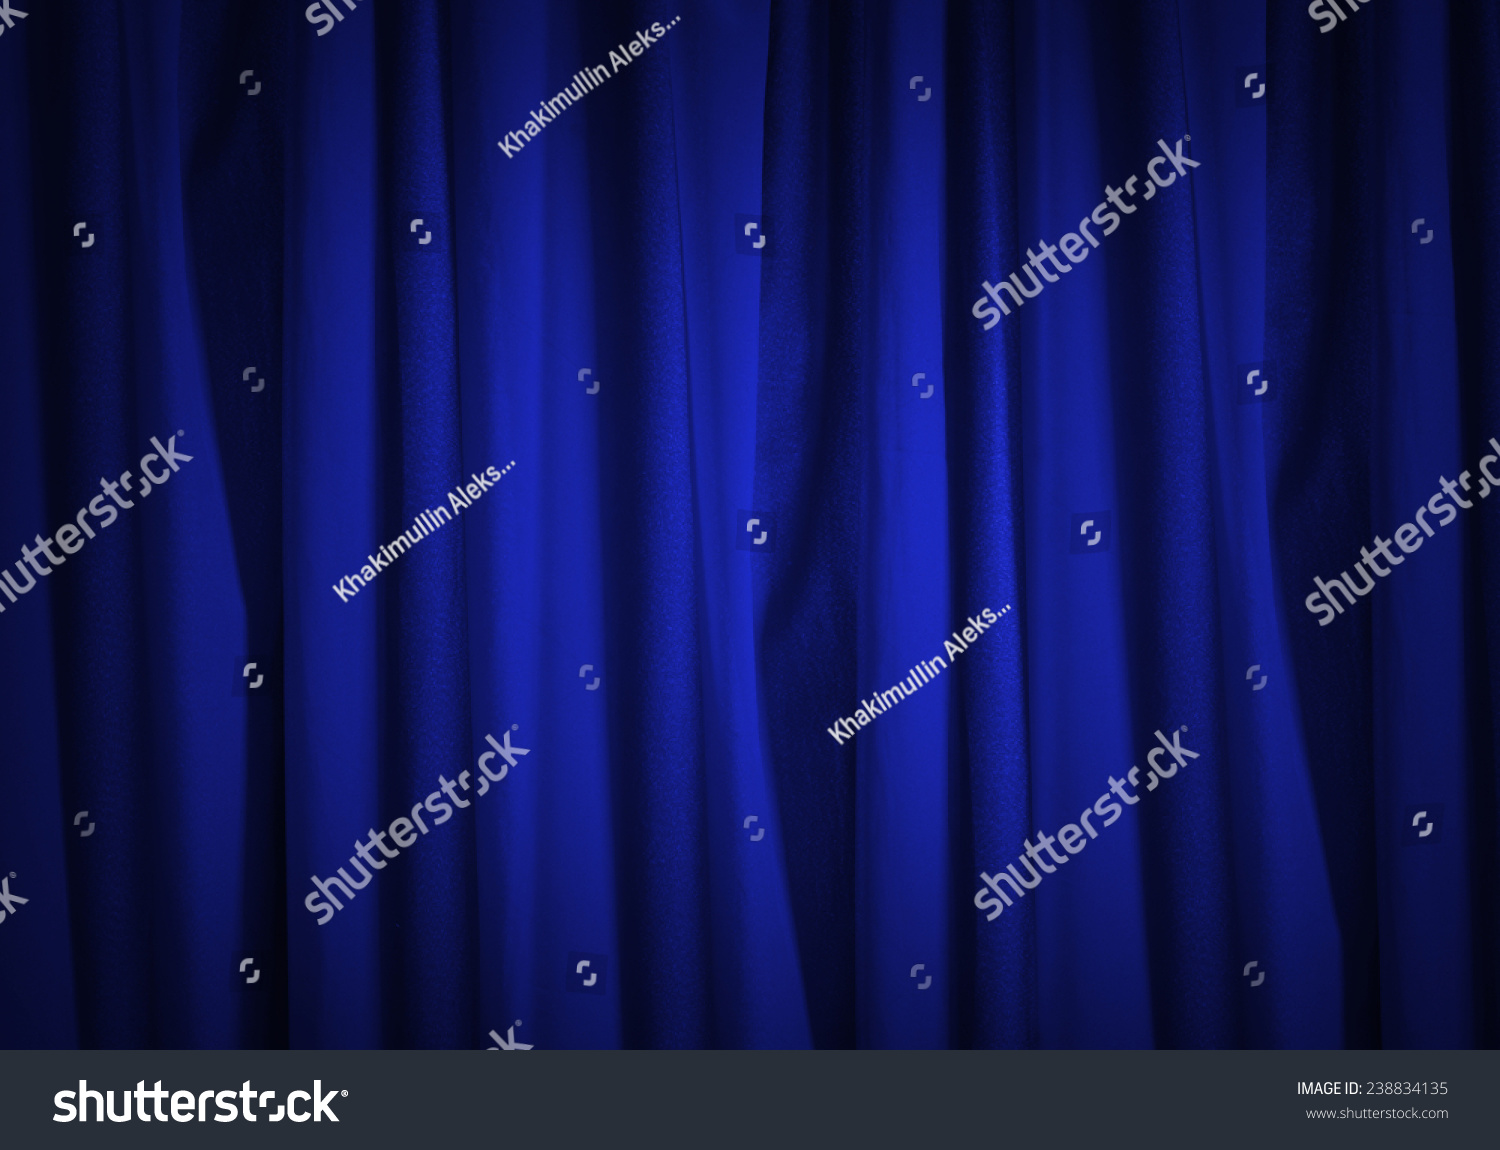 2017 06 stage curtains background - Background Image Of Blue Velvet Stage Curtain